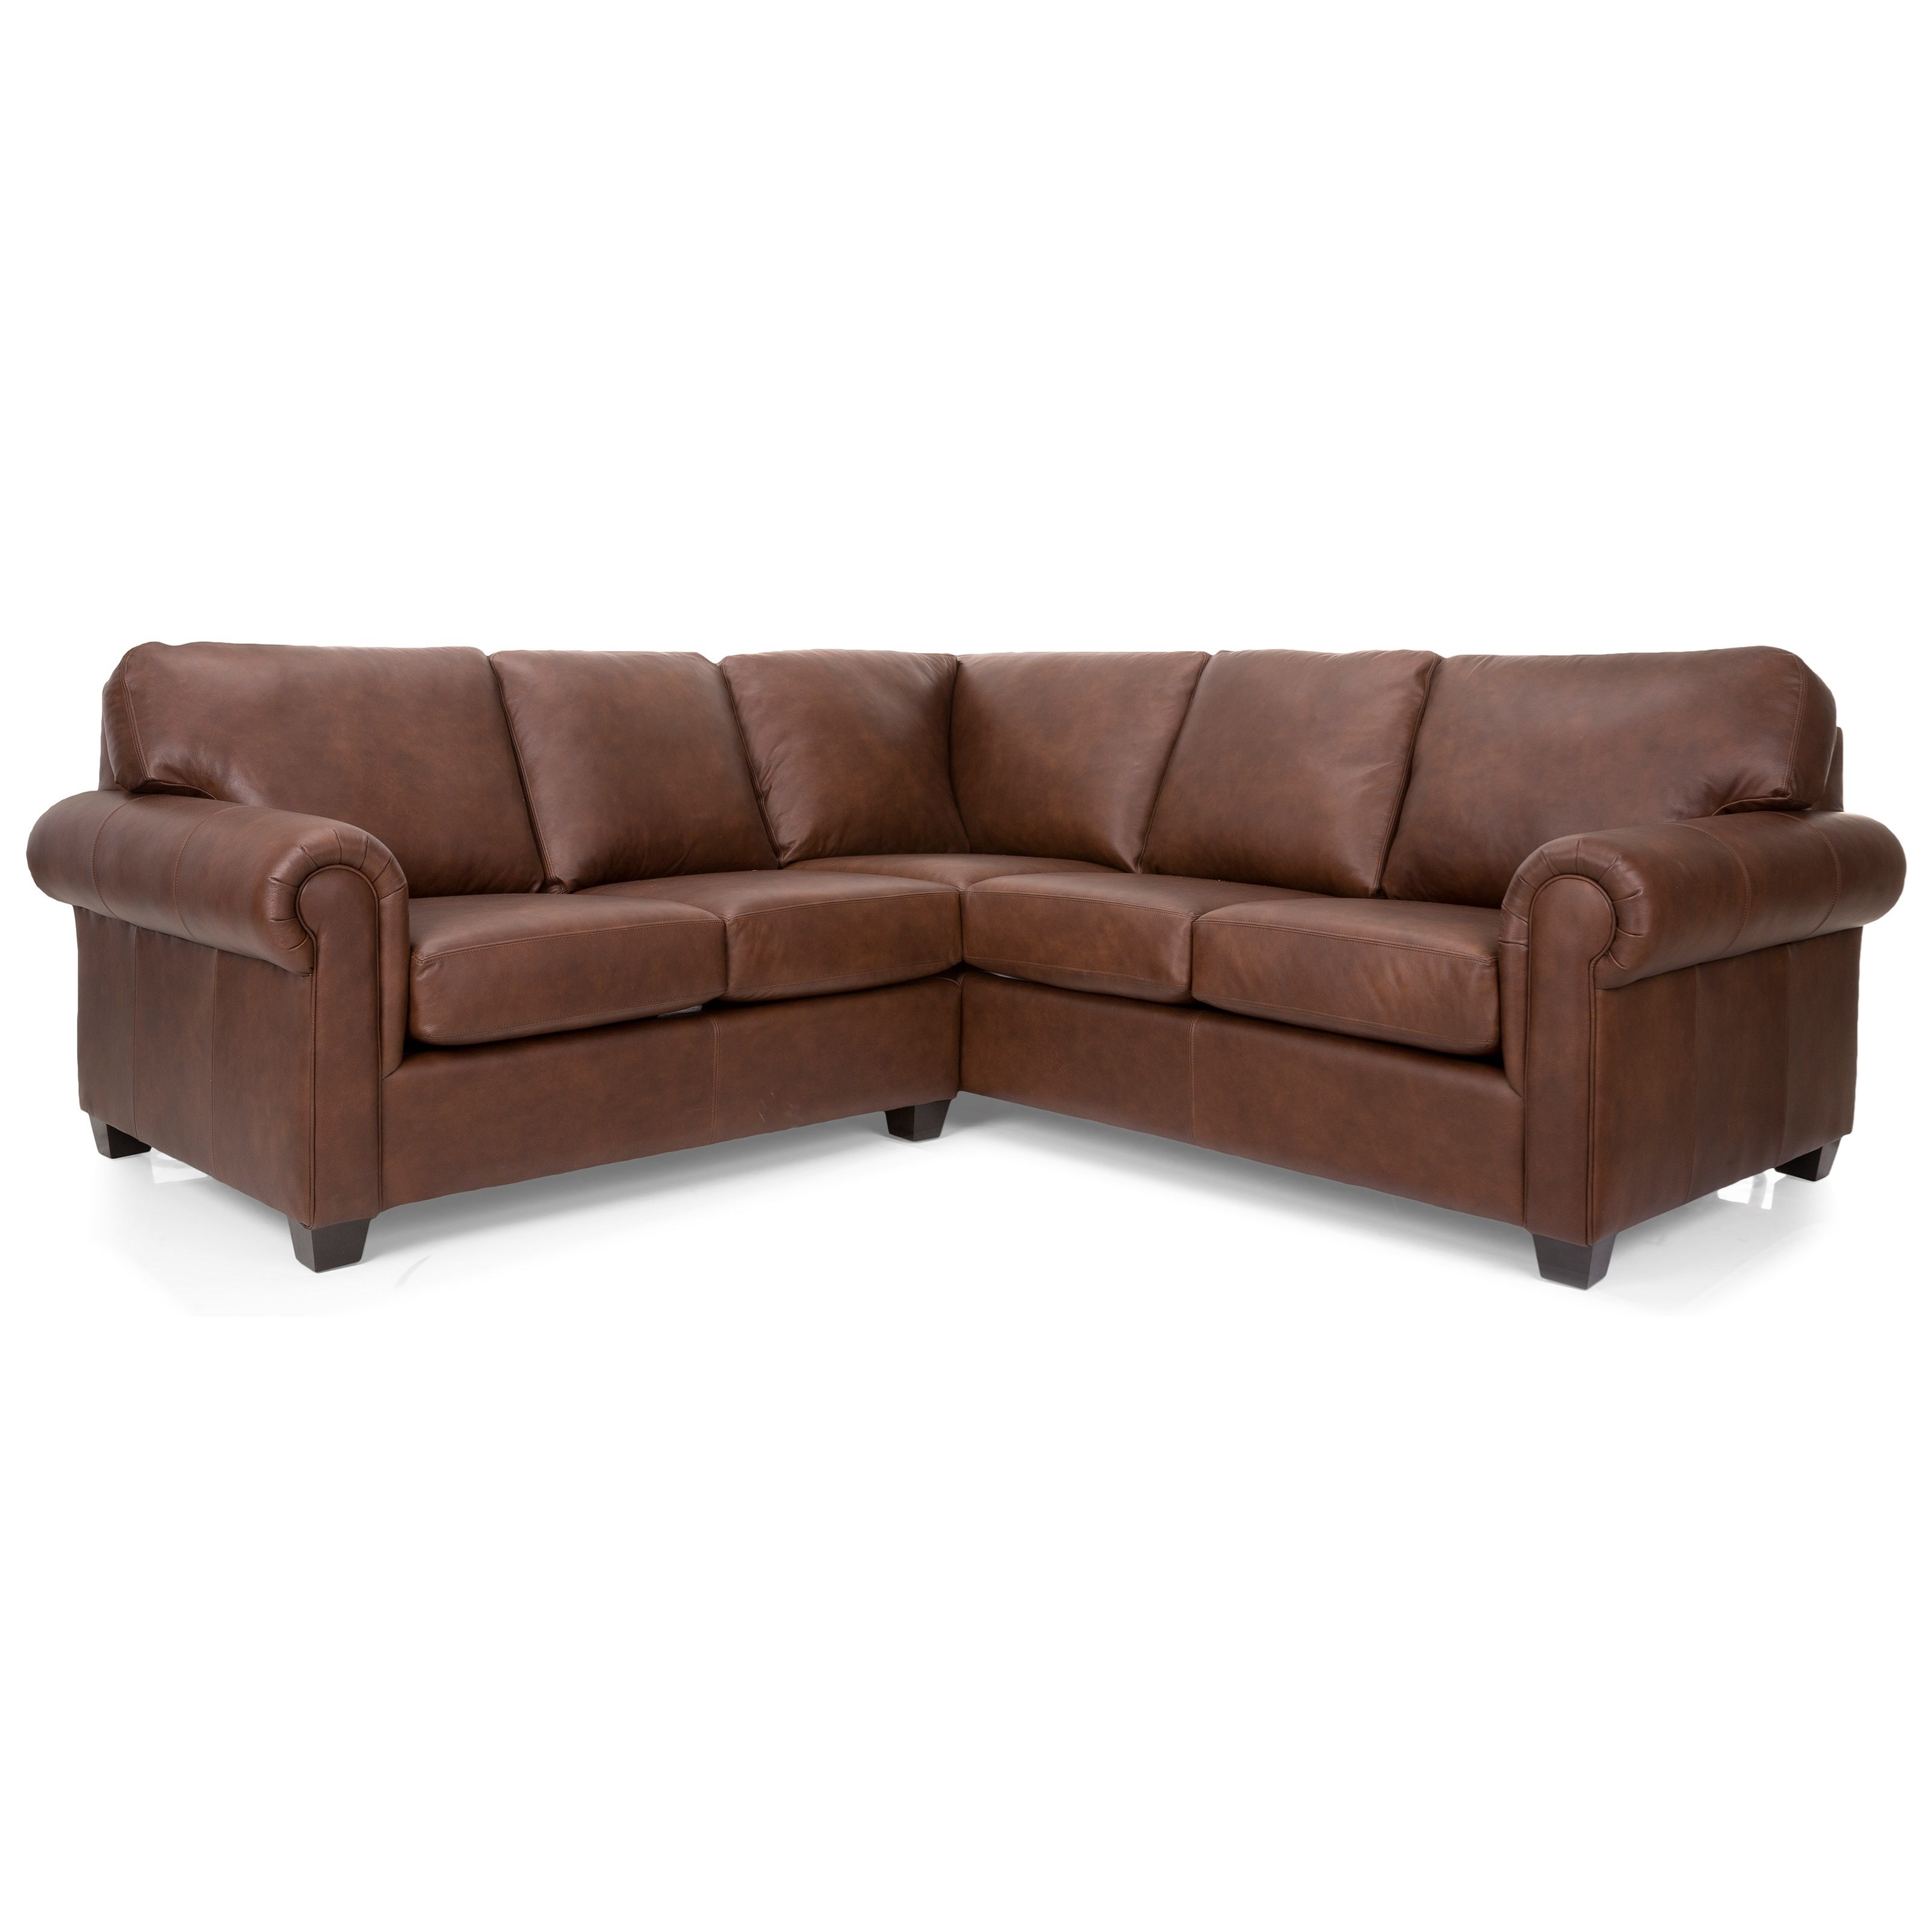 2006 Sectional Series L-Shaped Sectional by Decor-Rest at Johnny Janosik